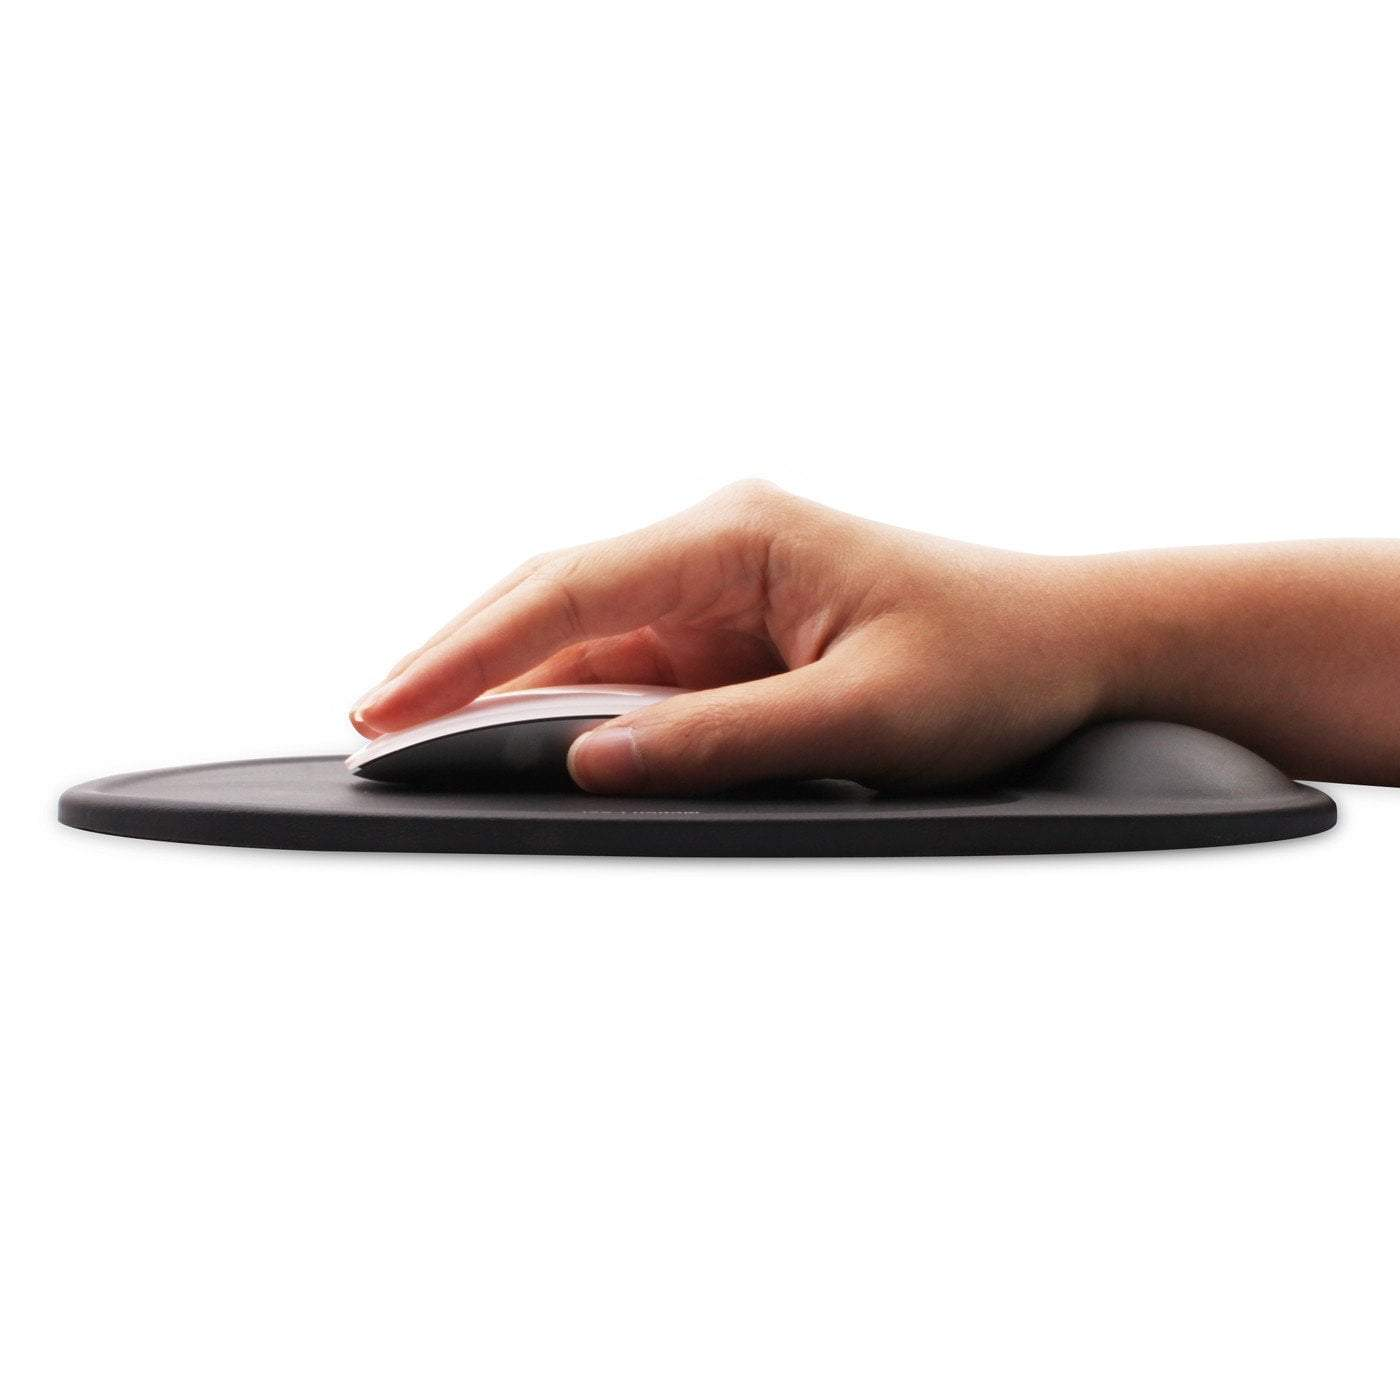 JCPal Accessories ComforPad Ergonomic Mouse Pad Black